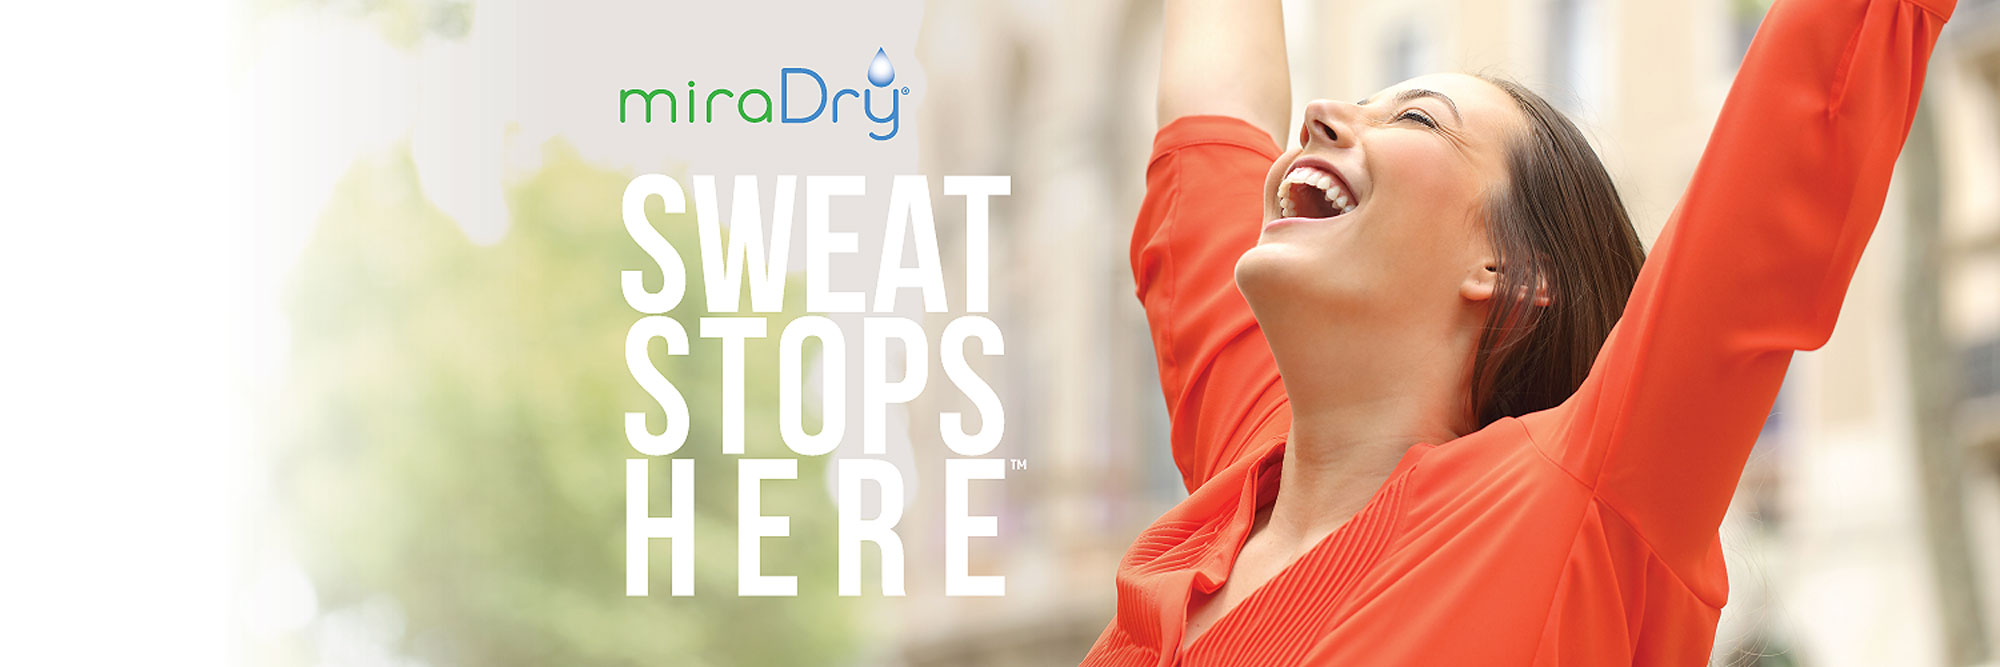 Sweat Stops Here. miraDry®